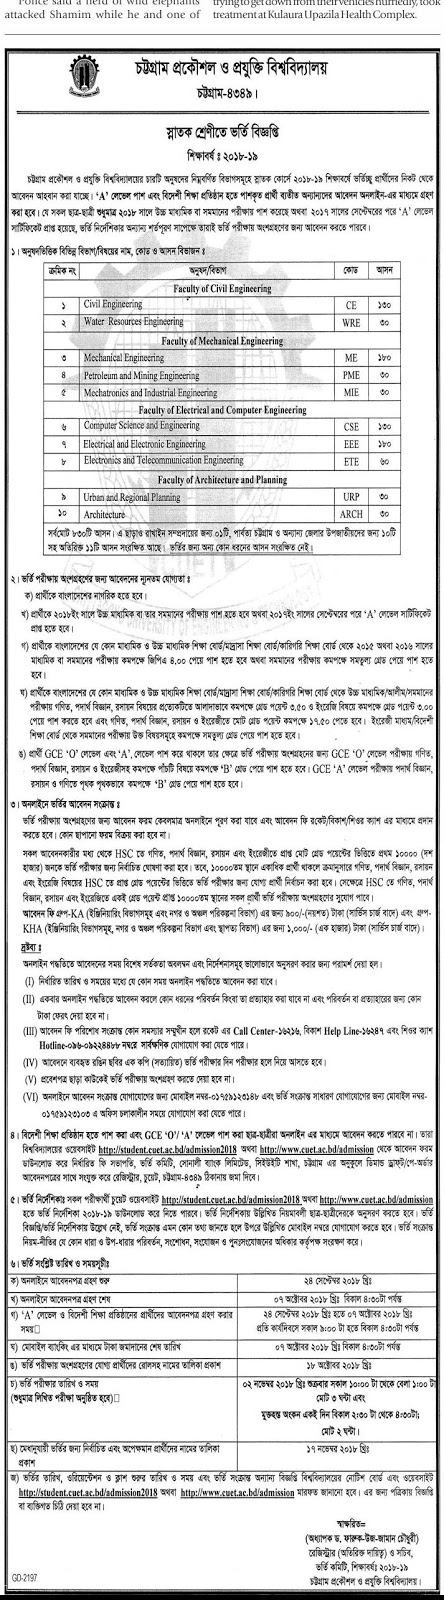 Chittagong University of Engineering and Technology (CUET) Undergraduate Admission Test Circular 2018-2019